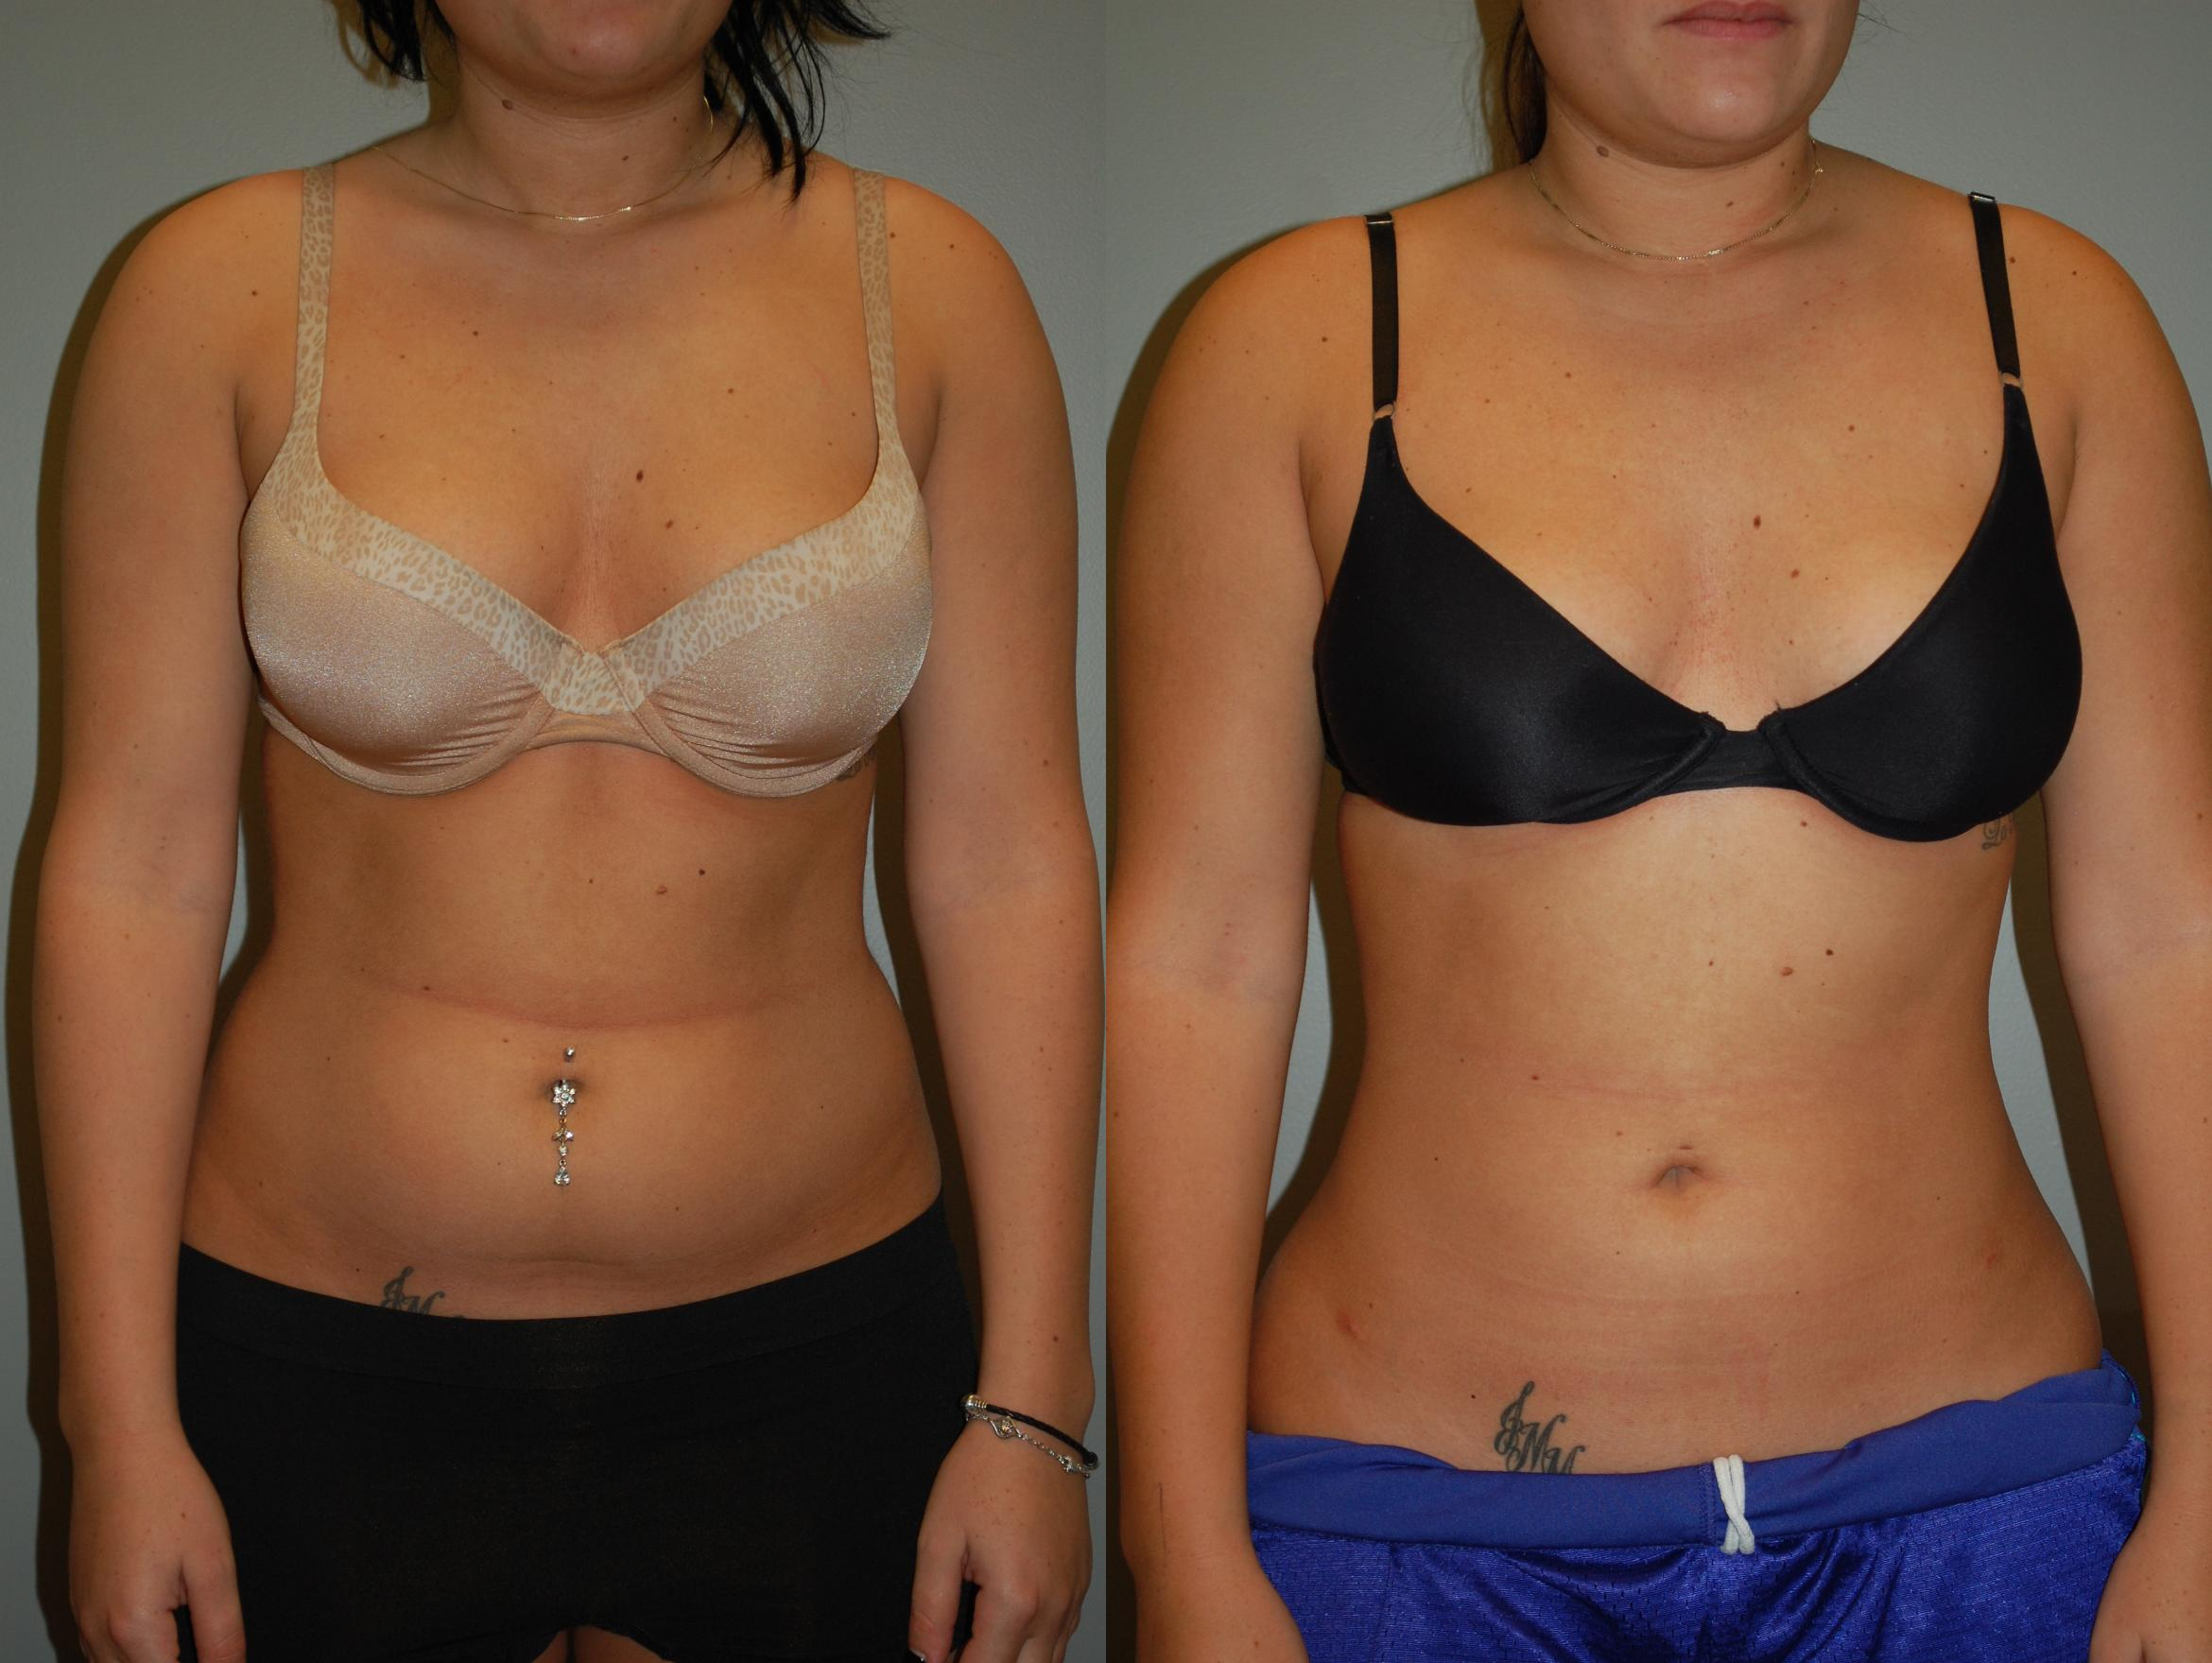 Liposuction Before & After Photo | Longmeadow, MA | Aesthetic Plastic & Reconstructive Surgery